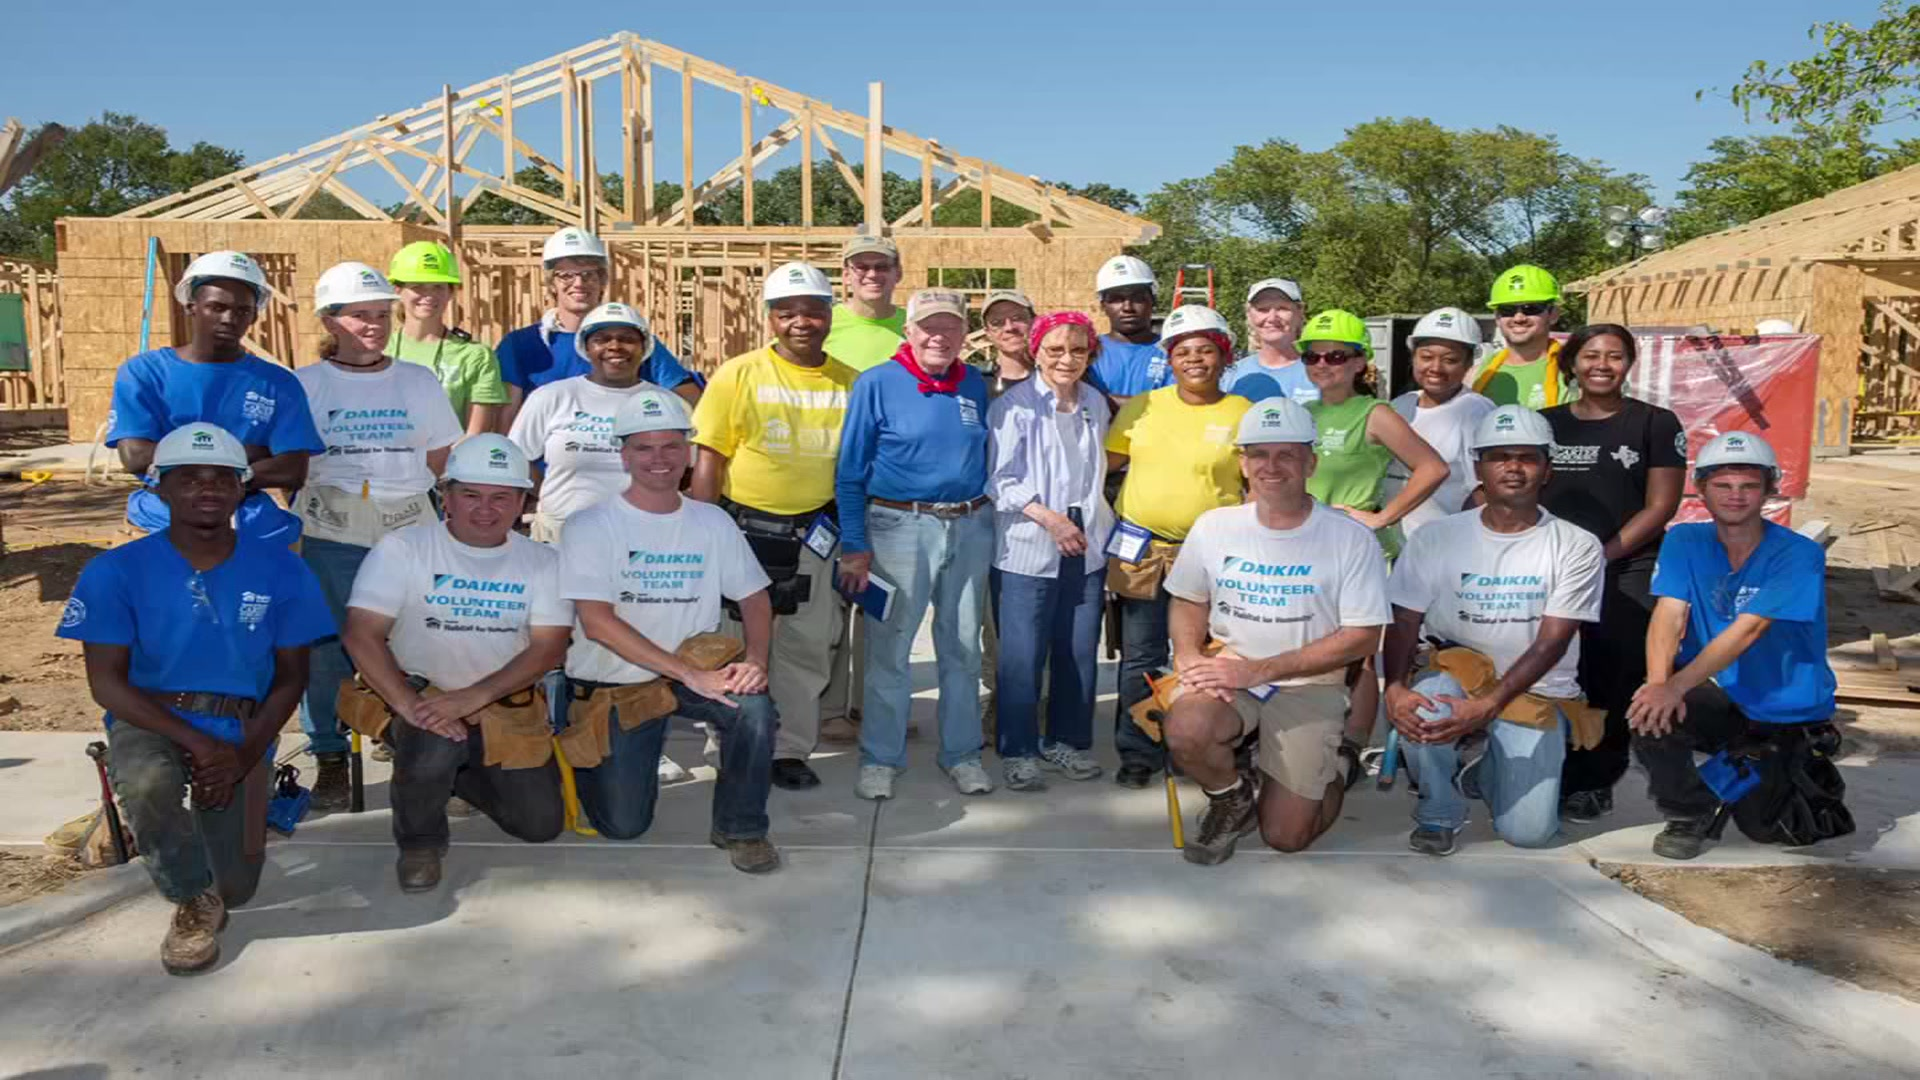 Youthbuild Helps Young People Rebuild Their Lives and Their Community